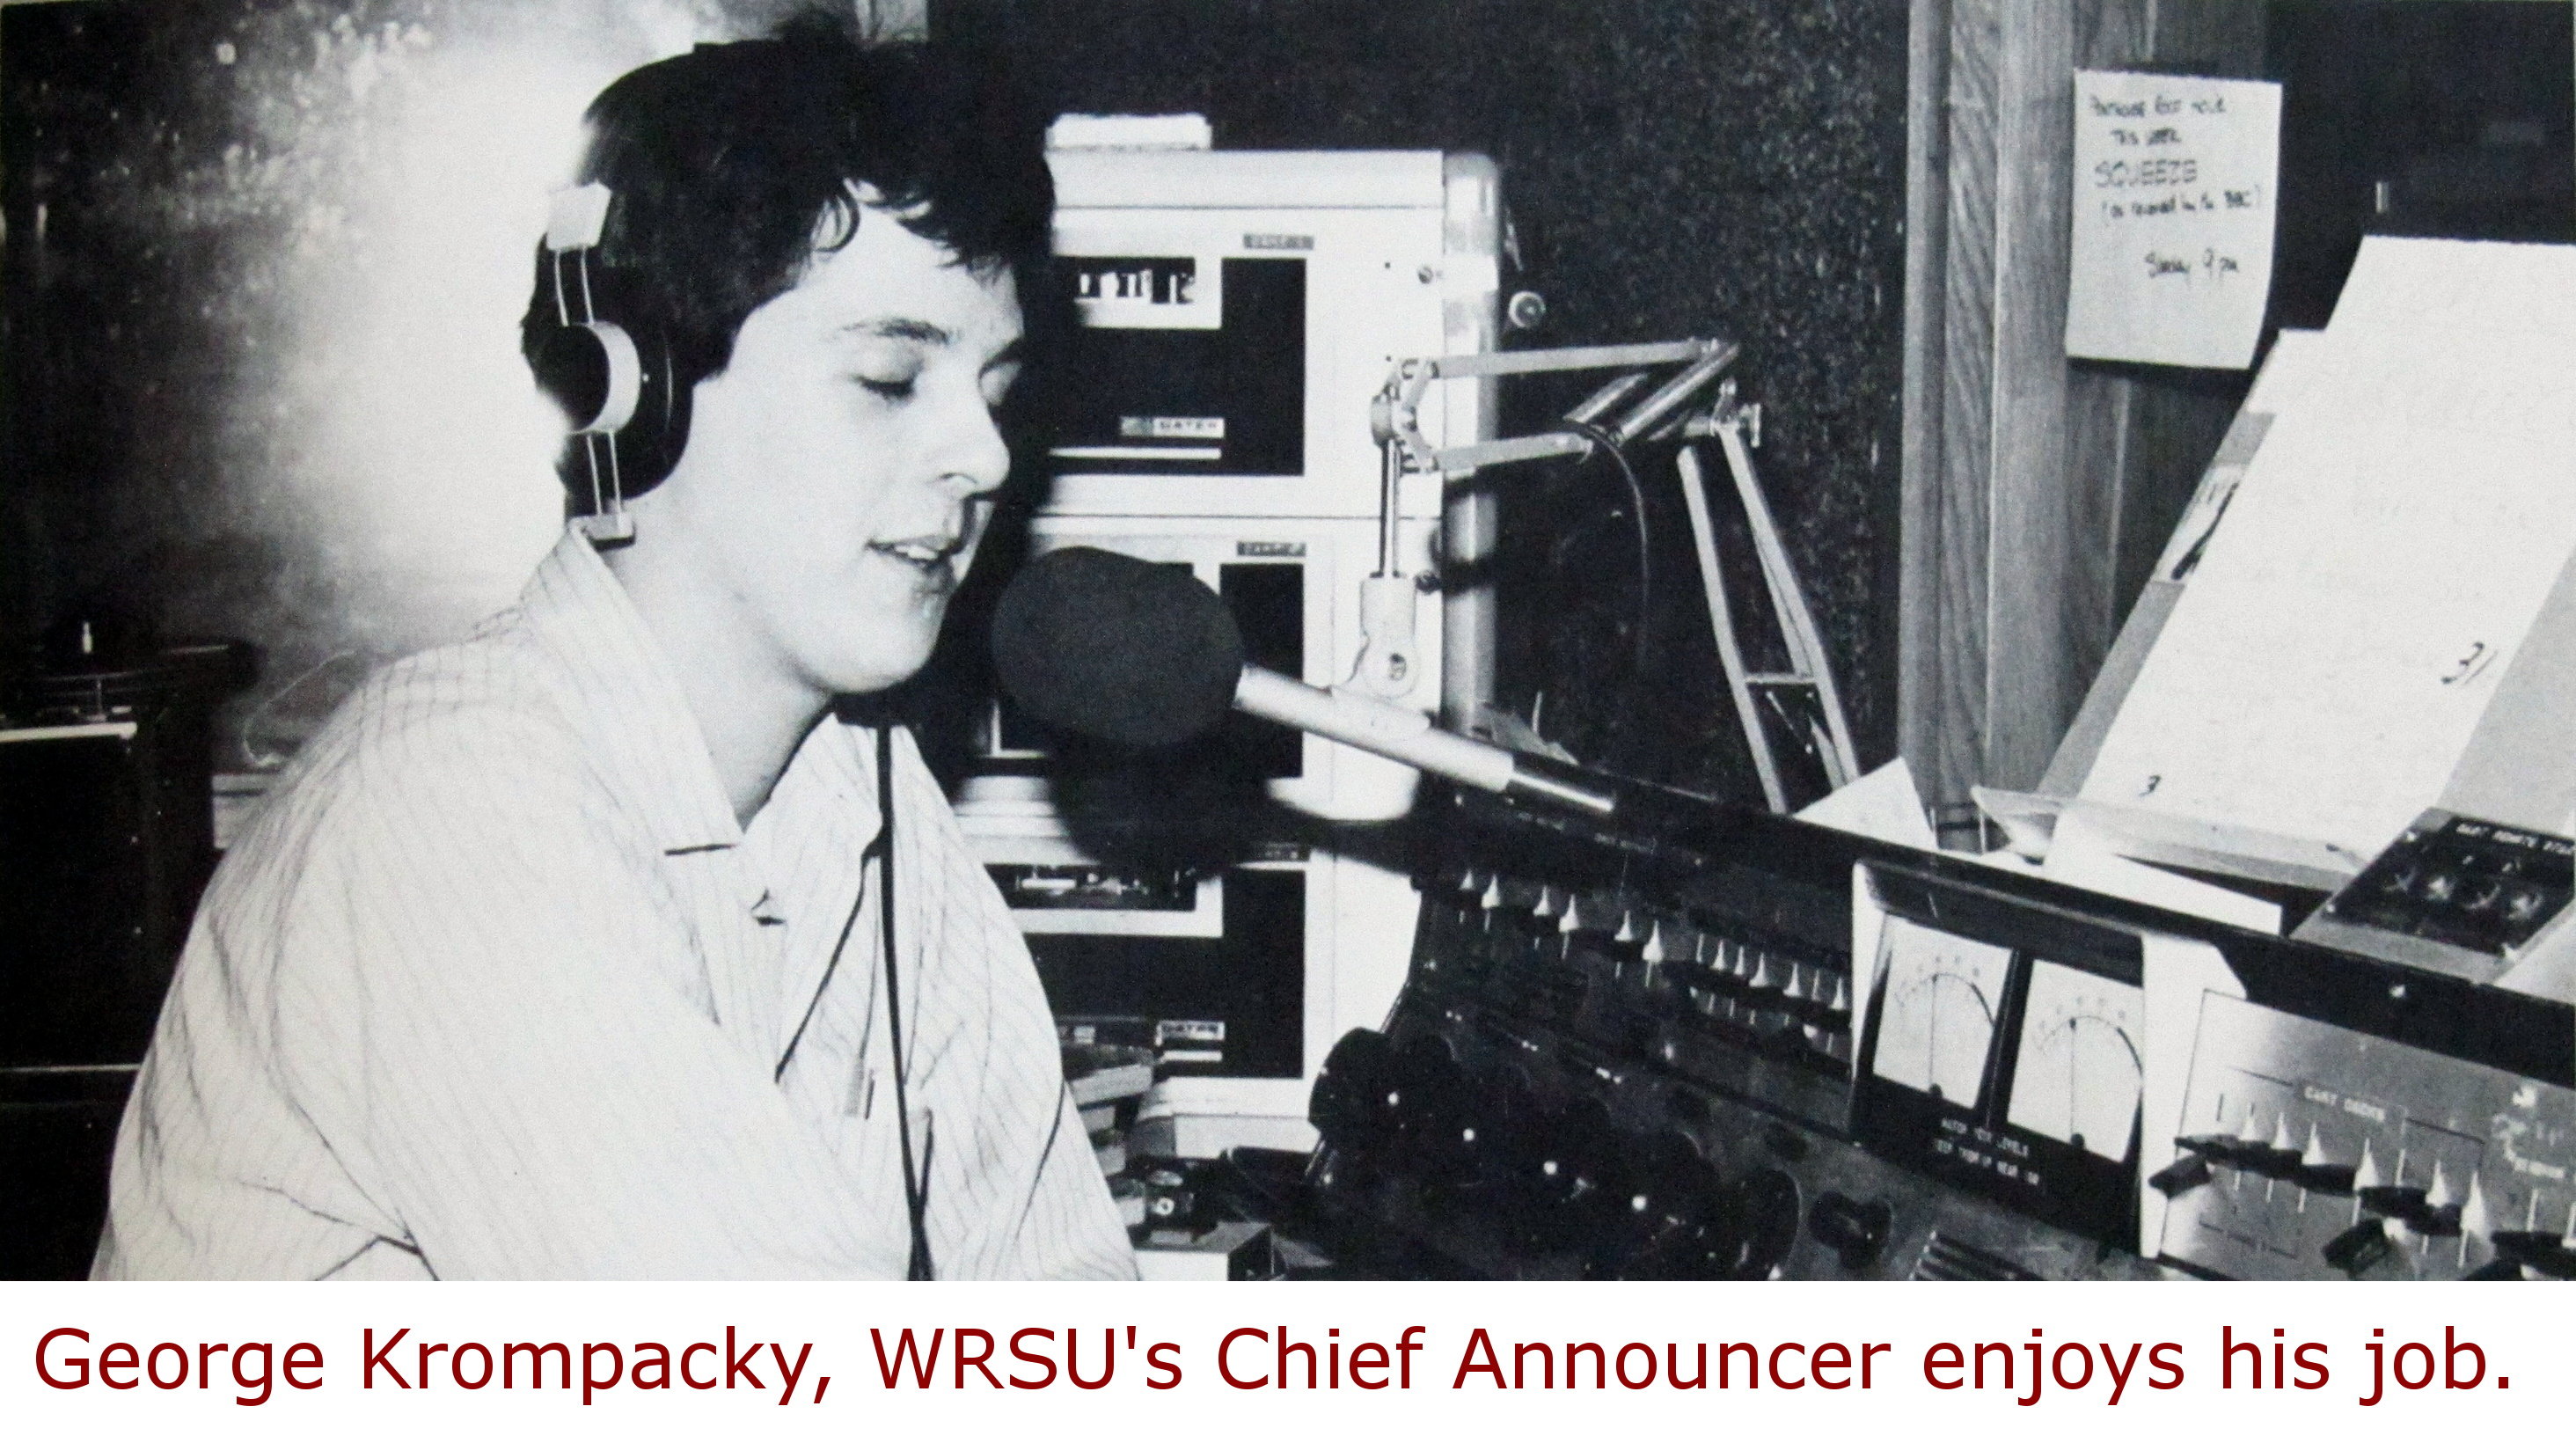 1984 Chief Announcer - George Krompacky